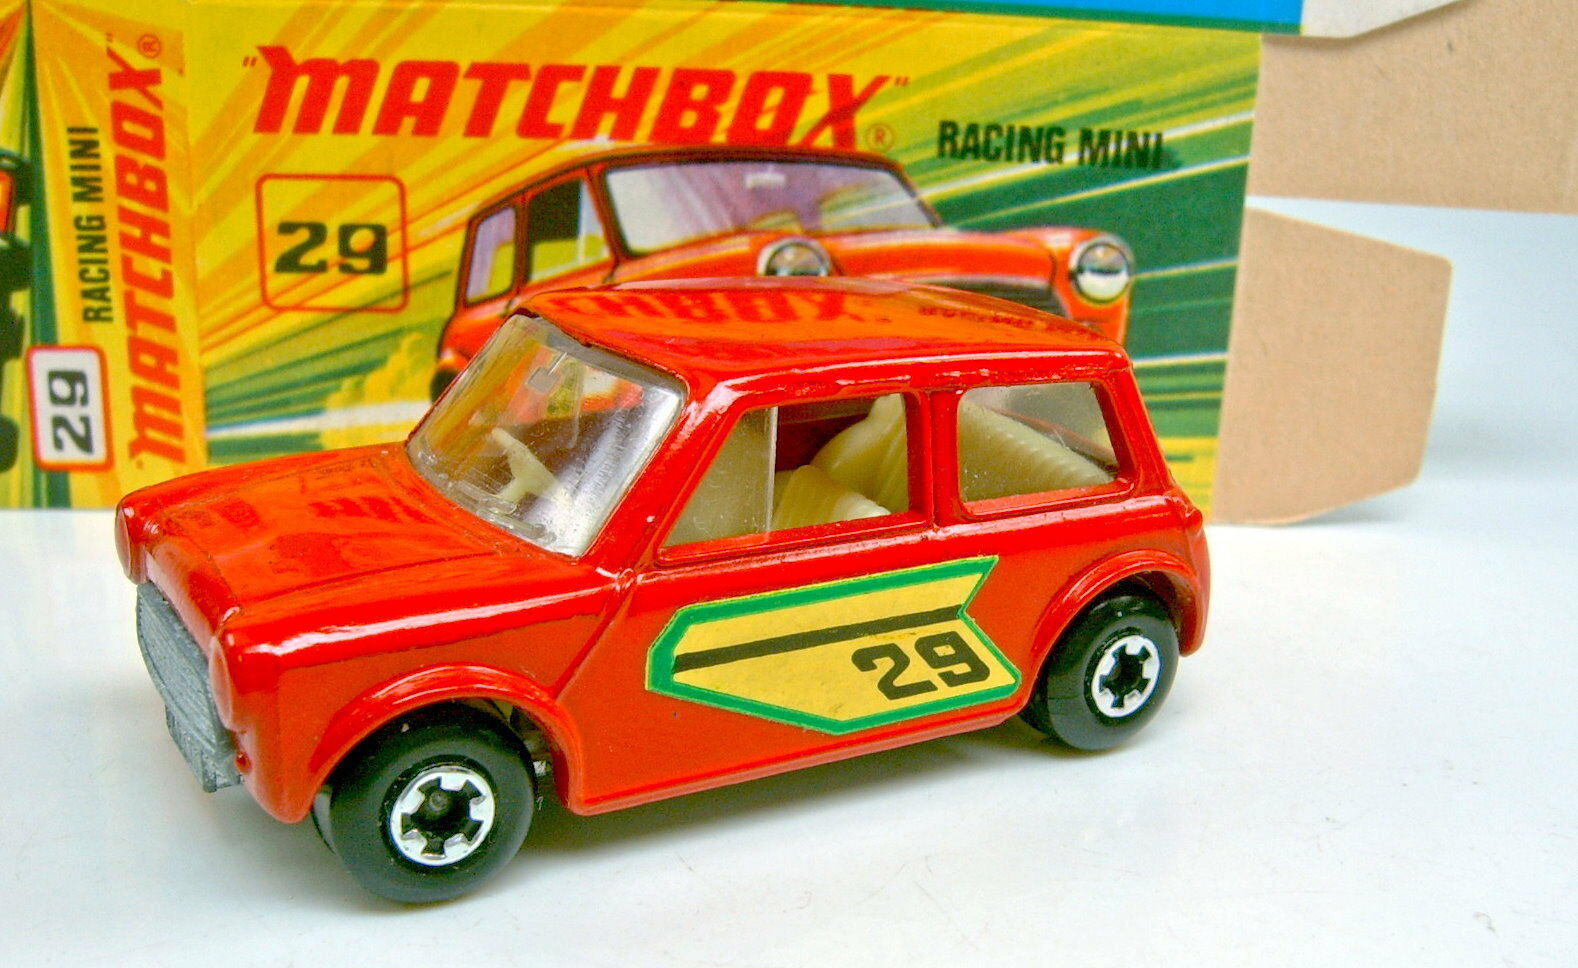 Matchbox SF Nr. 29B Racing Mini d'rot rare center-cut Räder top in perfekter Box